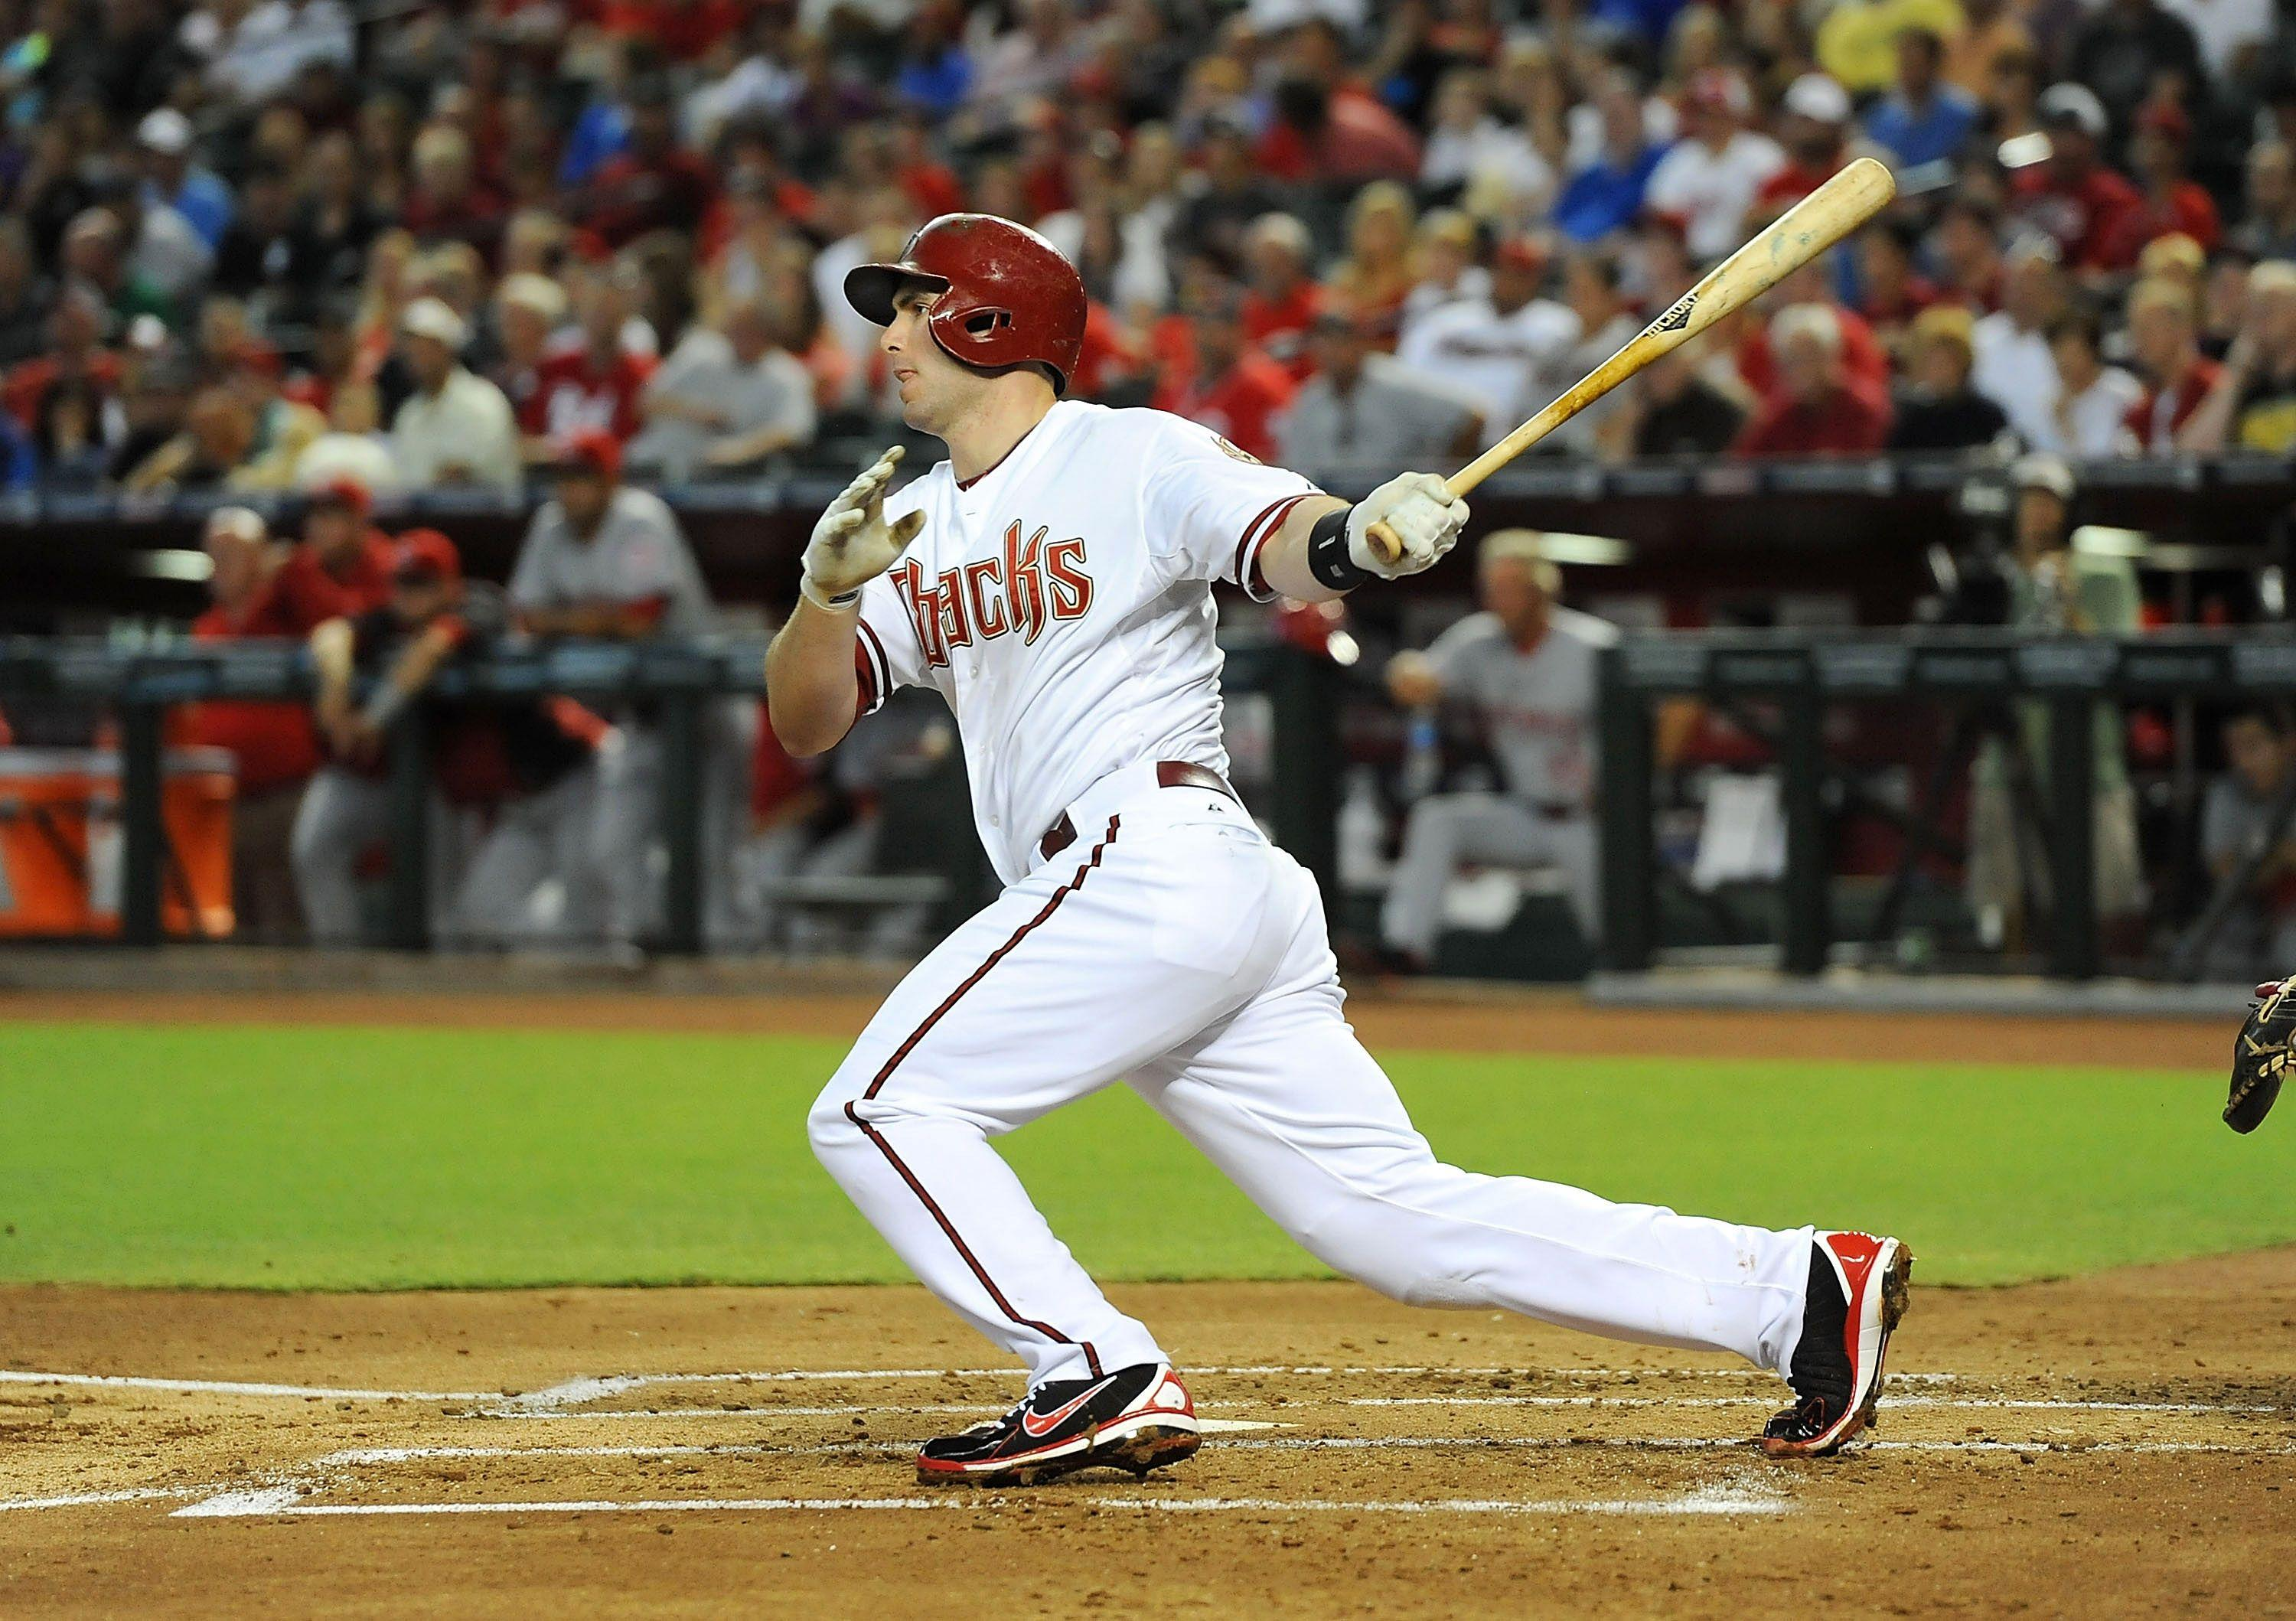 Paul Goldschmidt could be leagues most underrated star